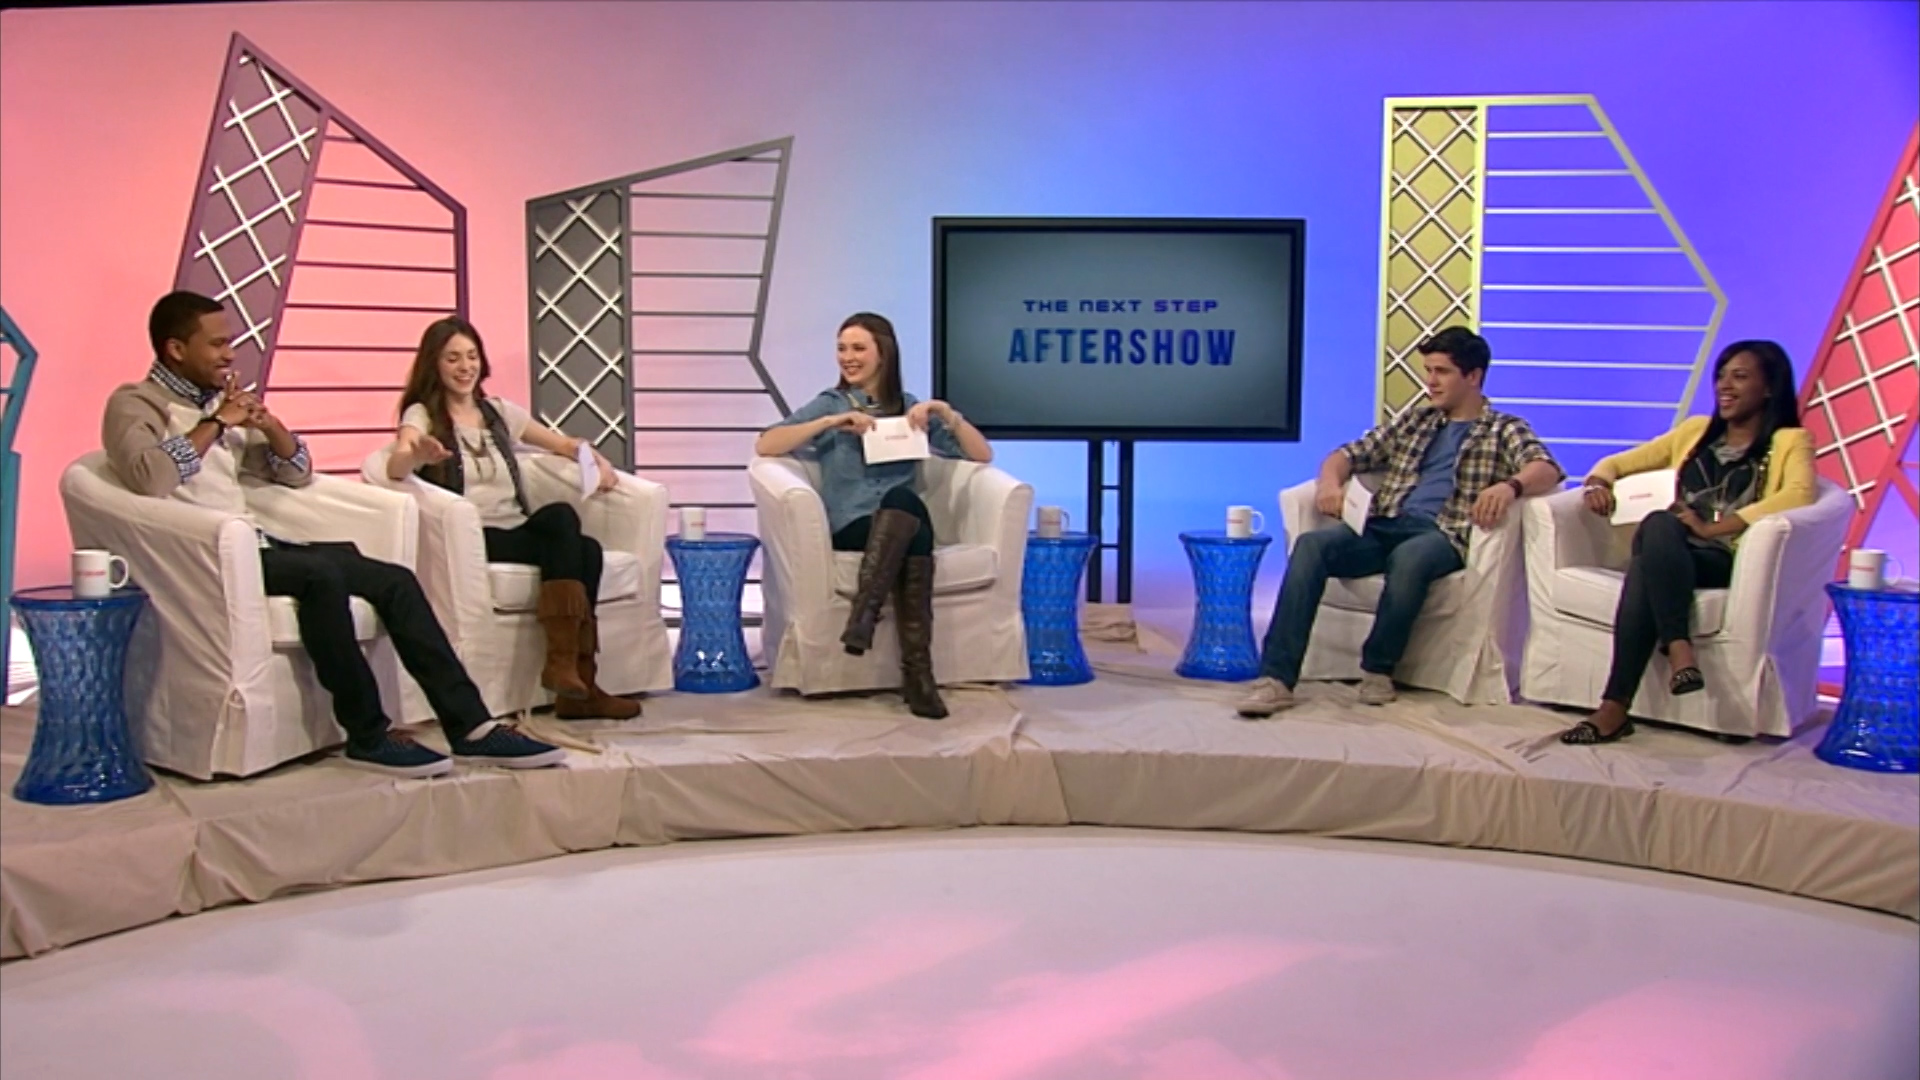 The Next Step Aftershow Panel.